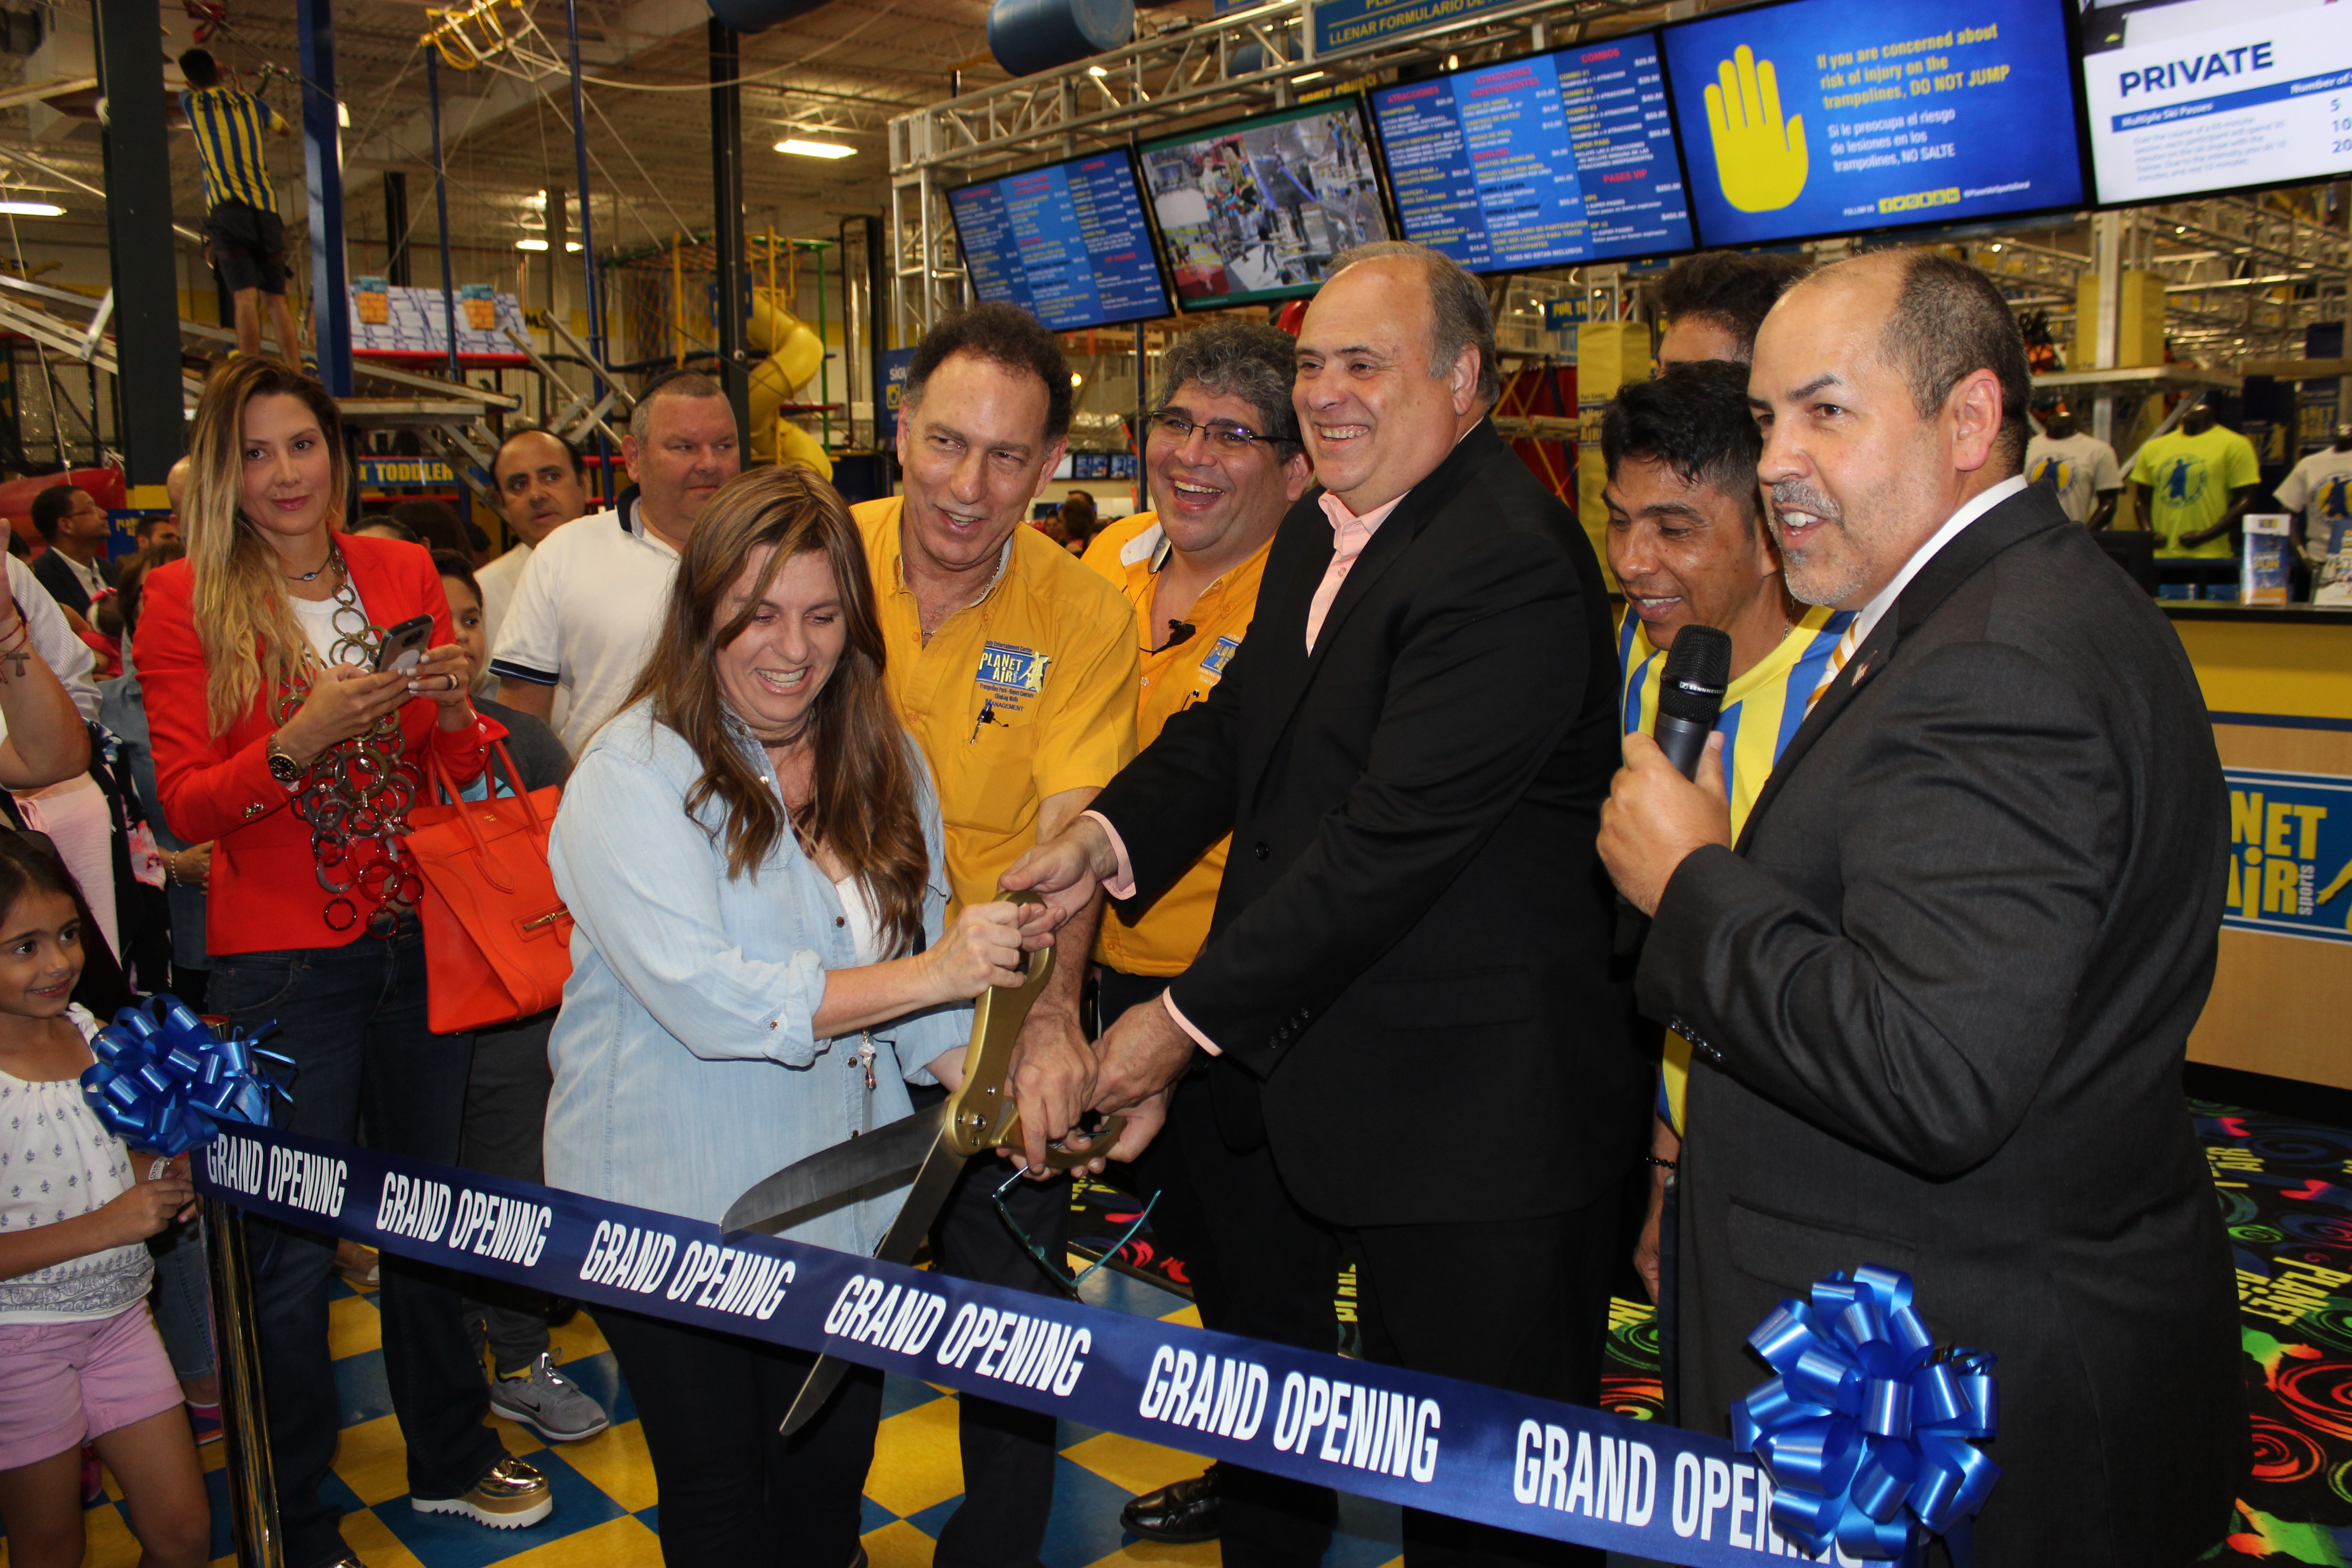 planet-air-sports-doral-chamber-of-commerce-051717 (51)